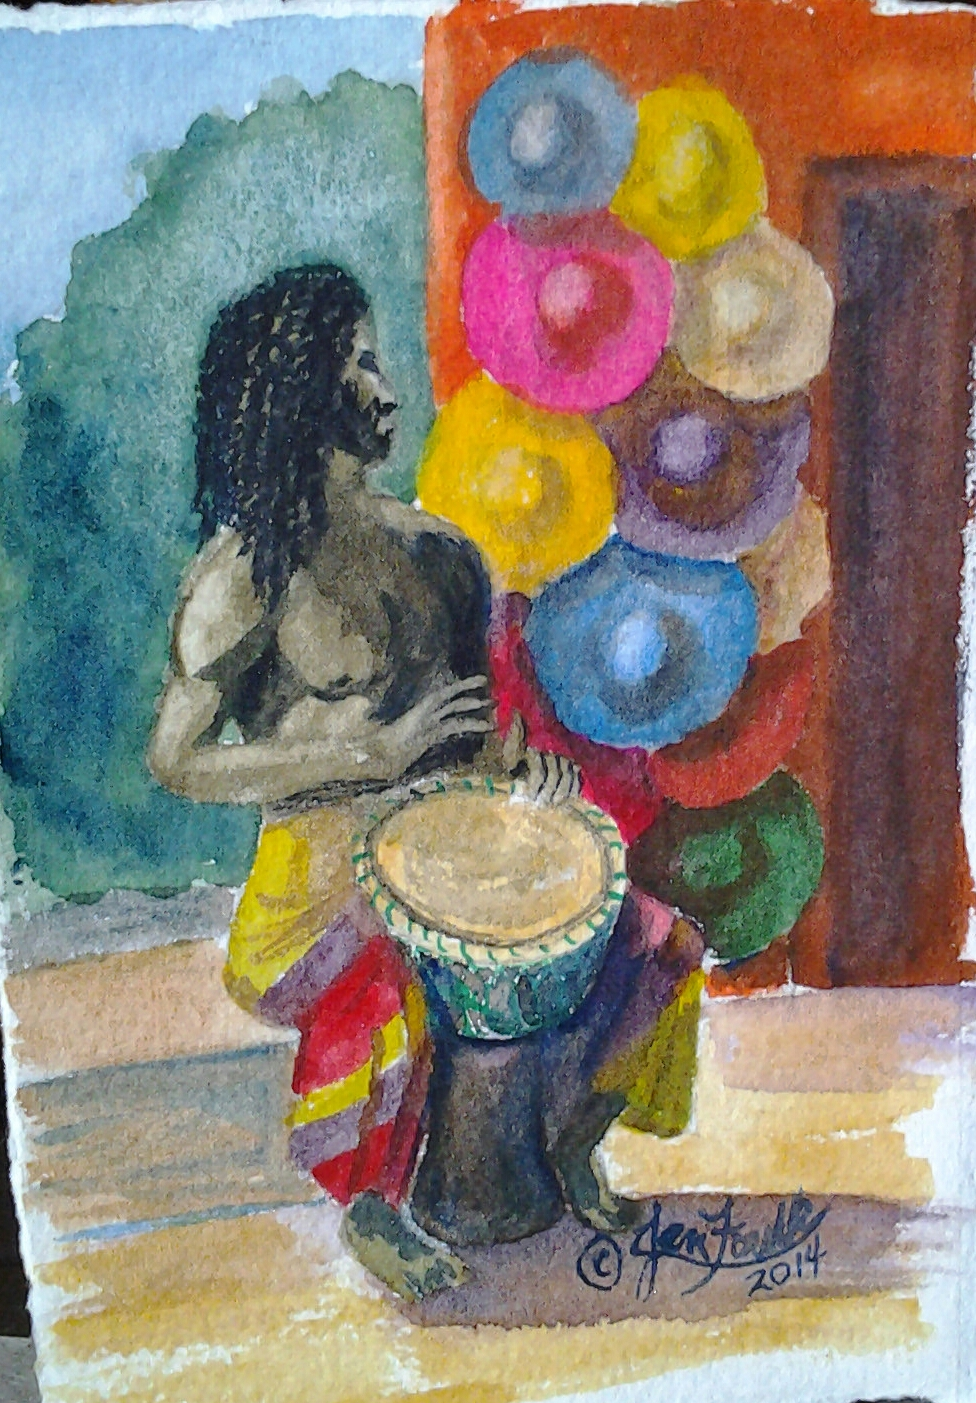 Bongo Beat, Jan Foulk